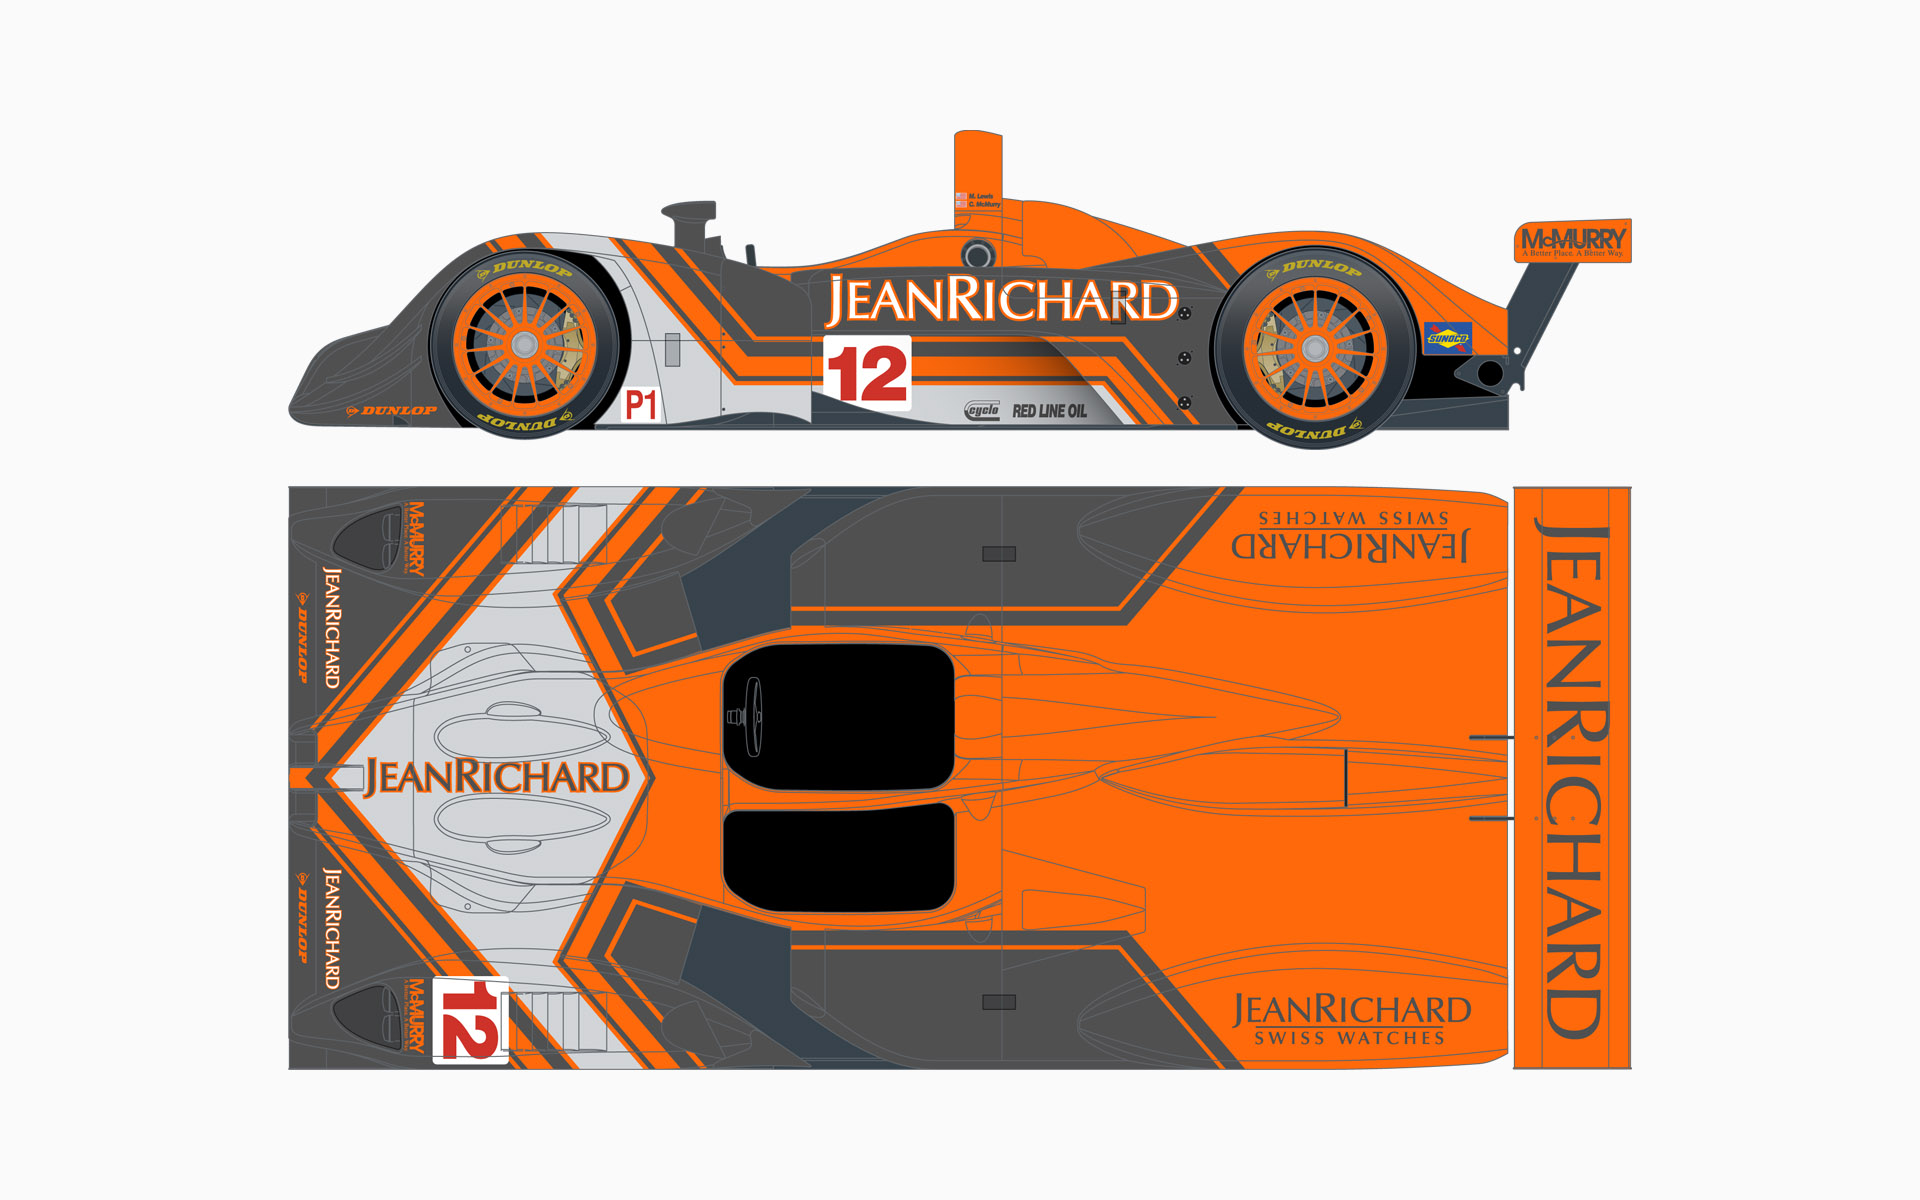 2007 Autocon Motorsports Jean Richard Lola EX257 Livery Elevations